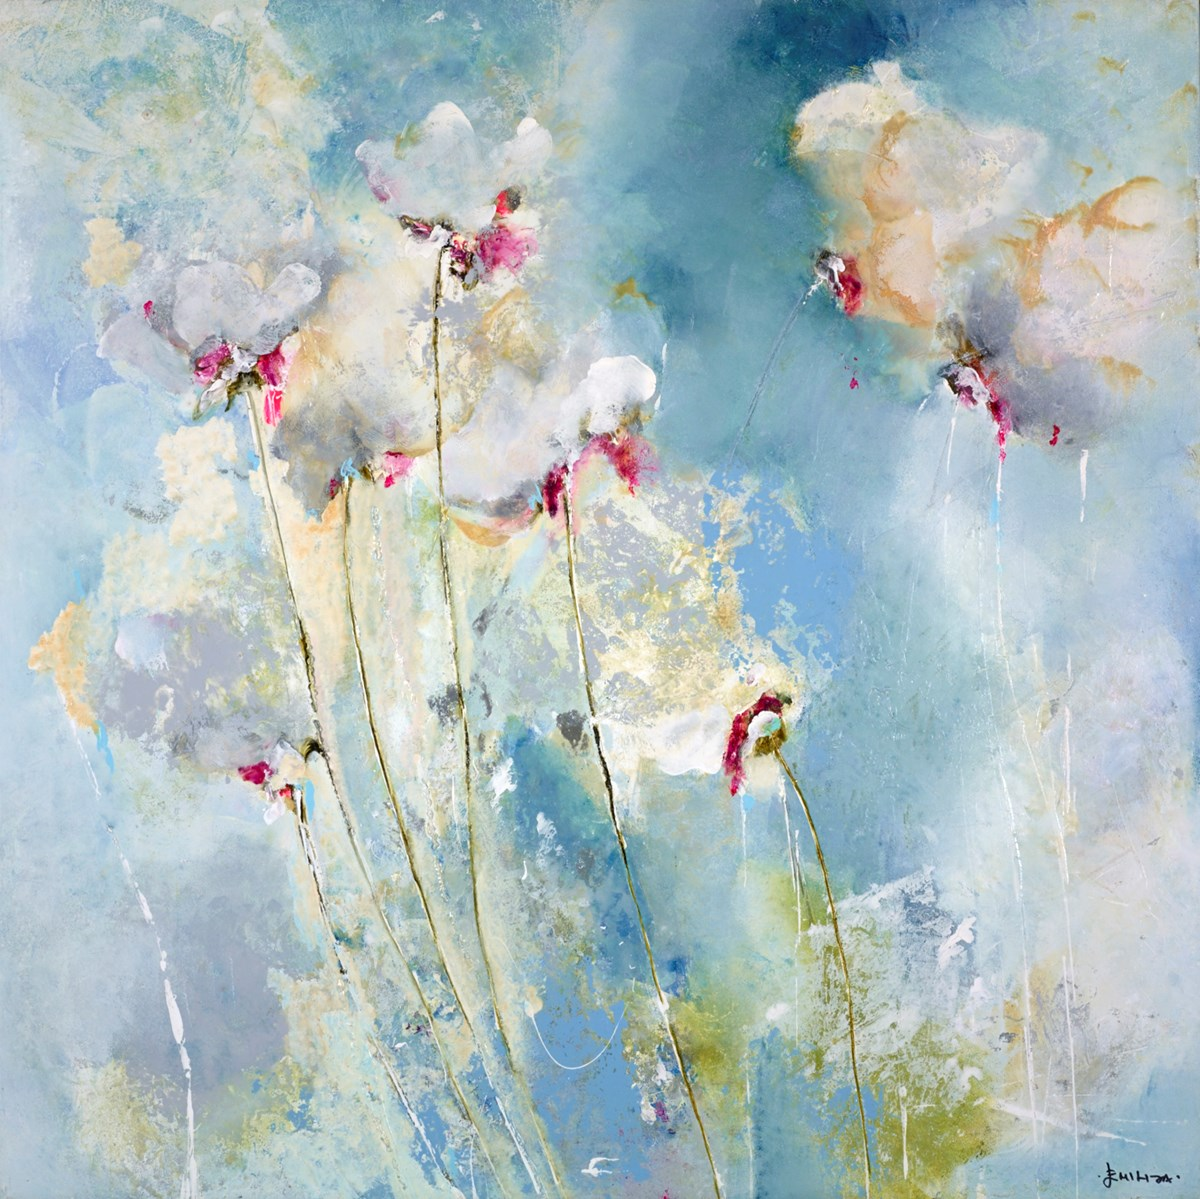 Euphoria IV by emilija pasagic -  sized 36x36 inches. Available from Whitewall Galleries